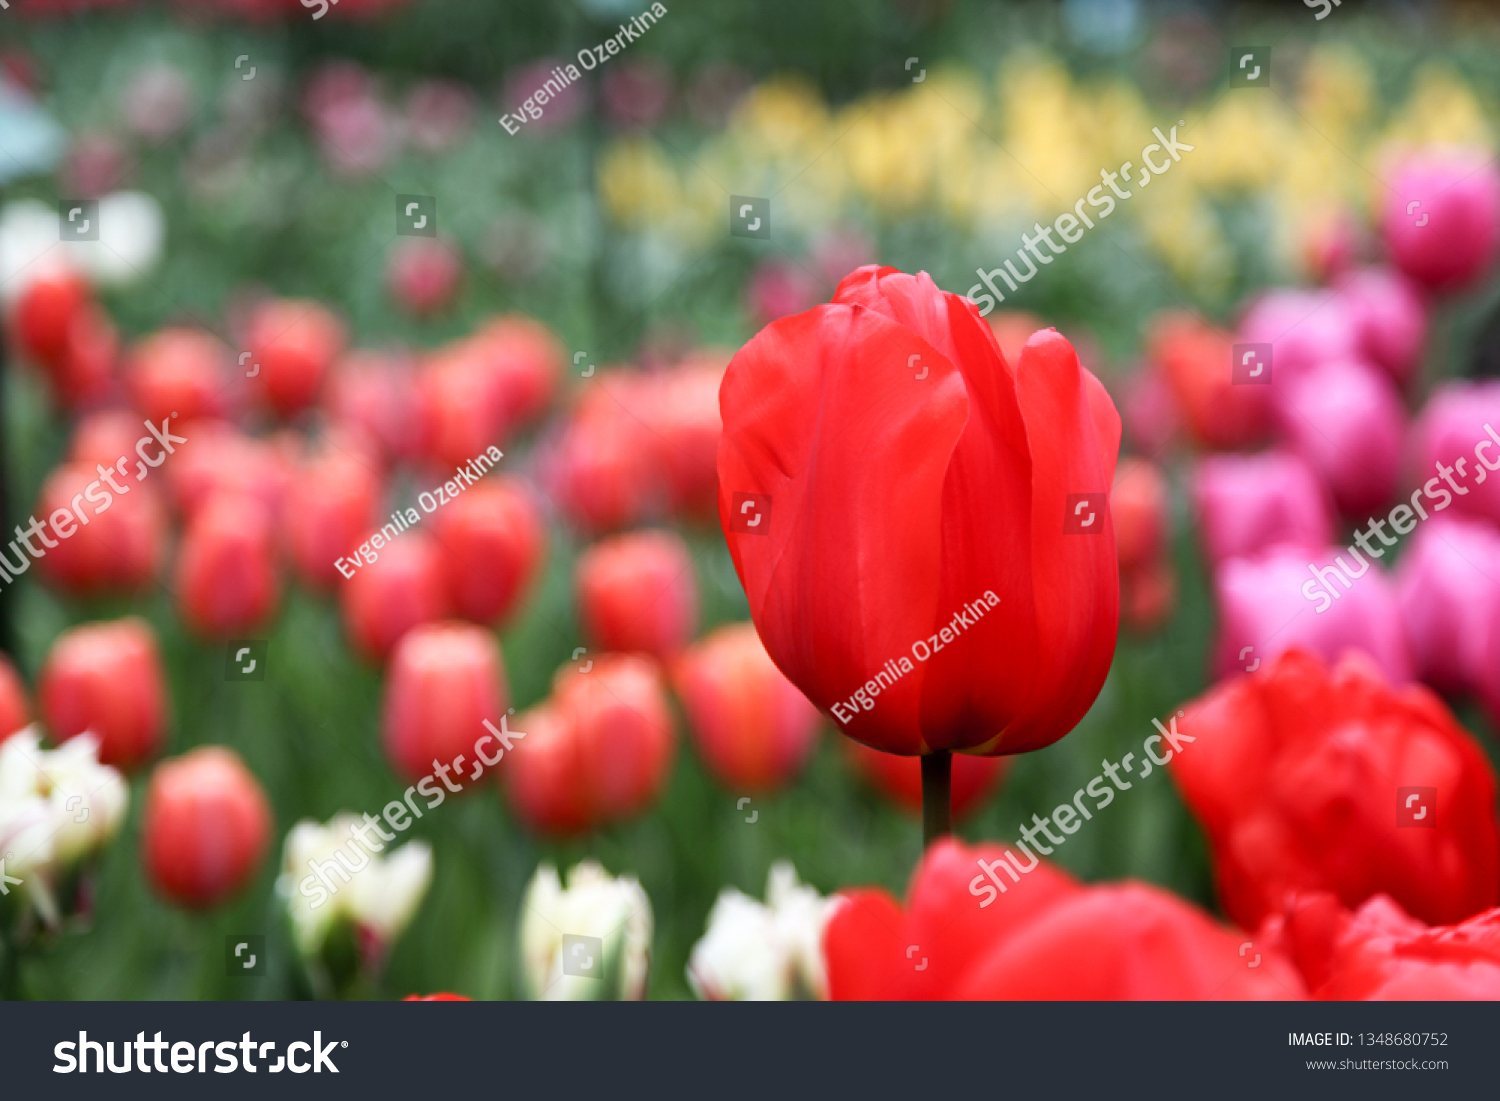 stock-photo-red-tulip-against-the-backgr